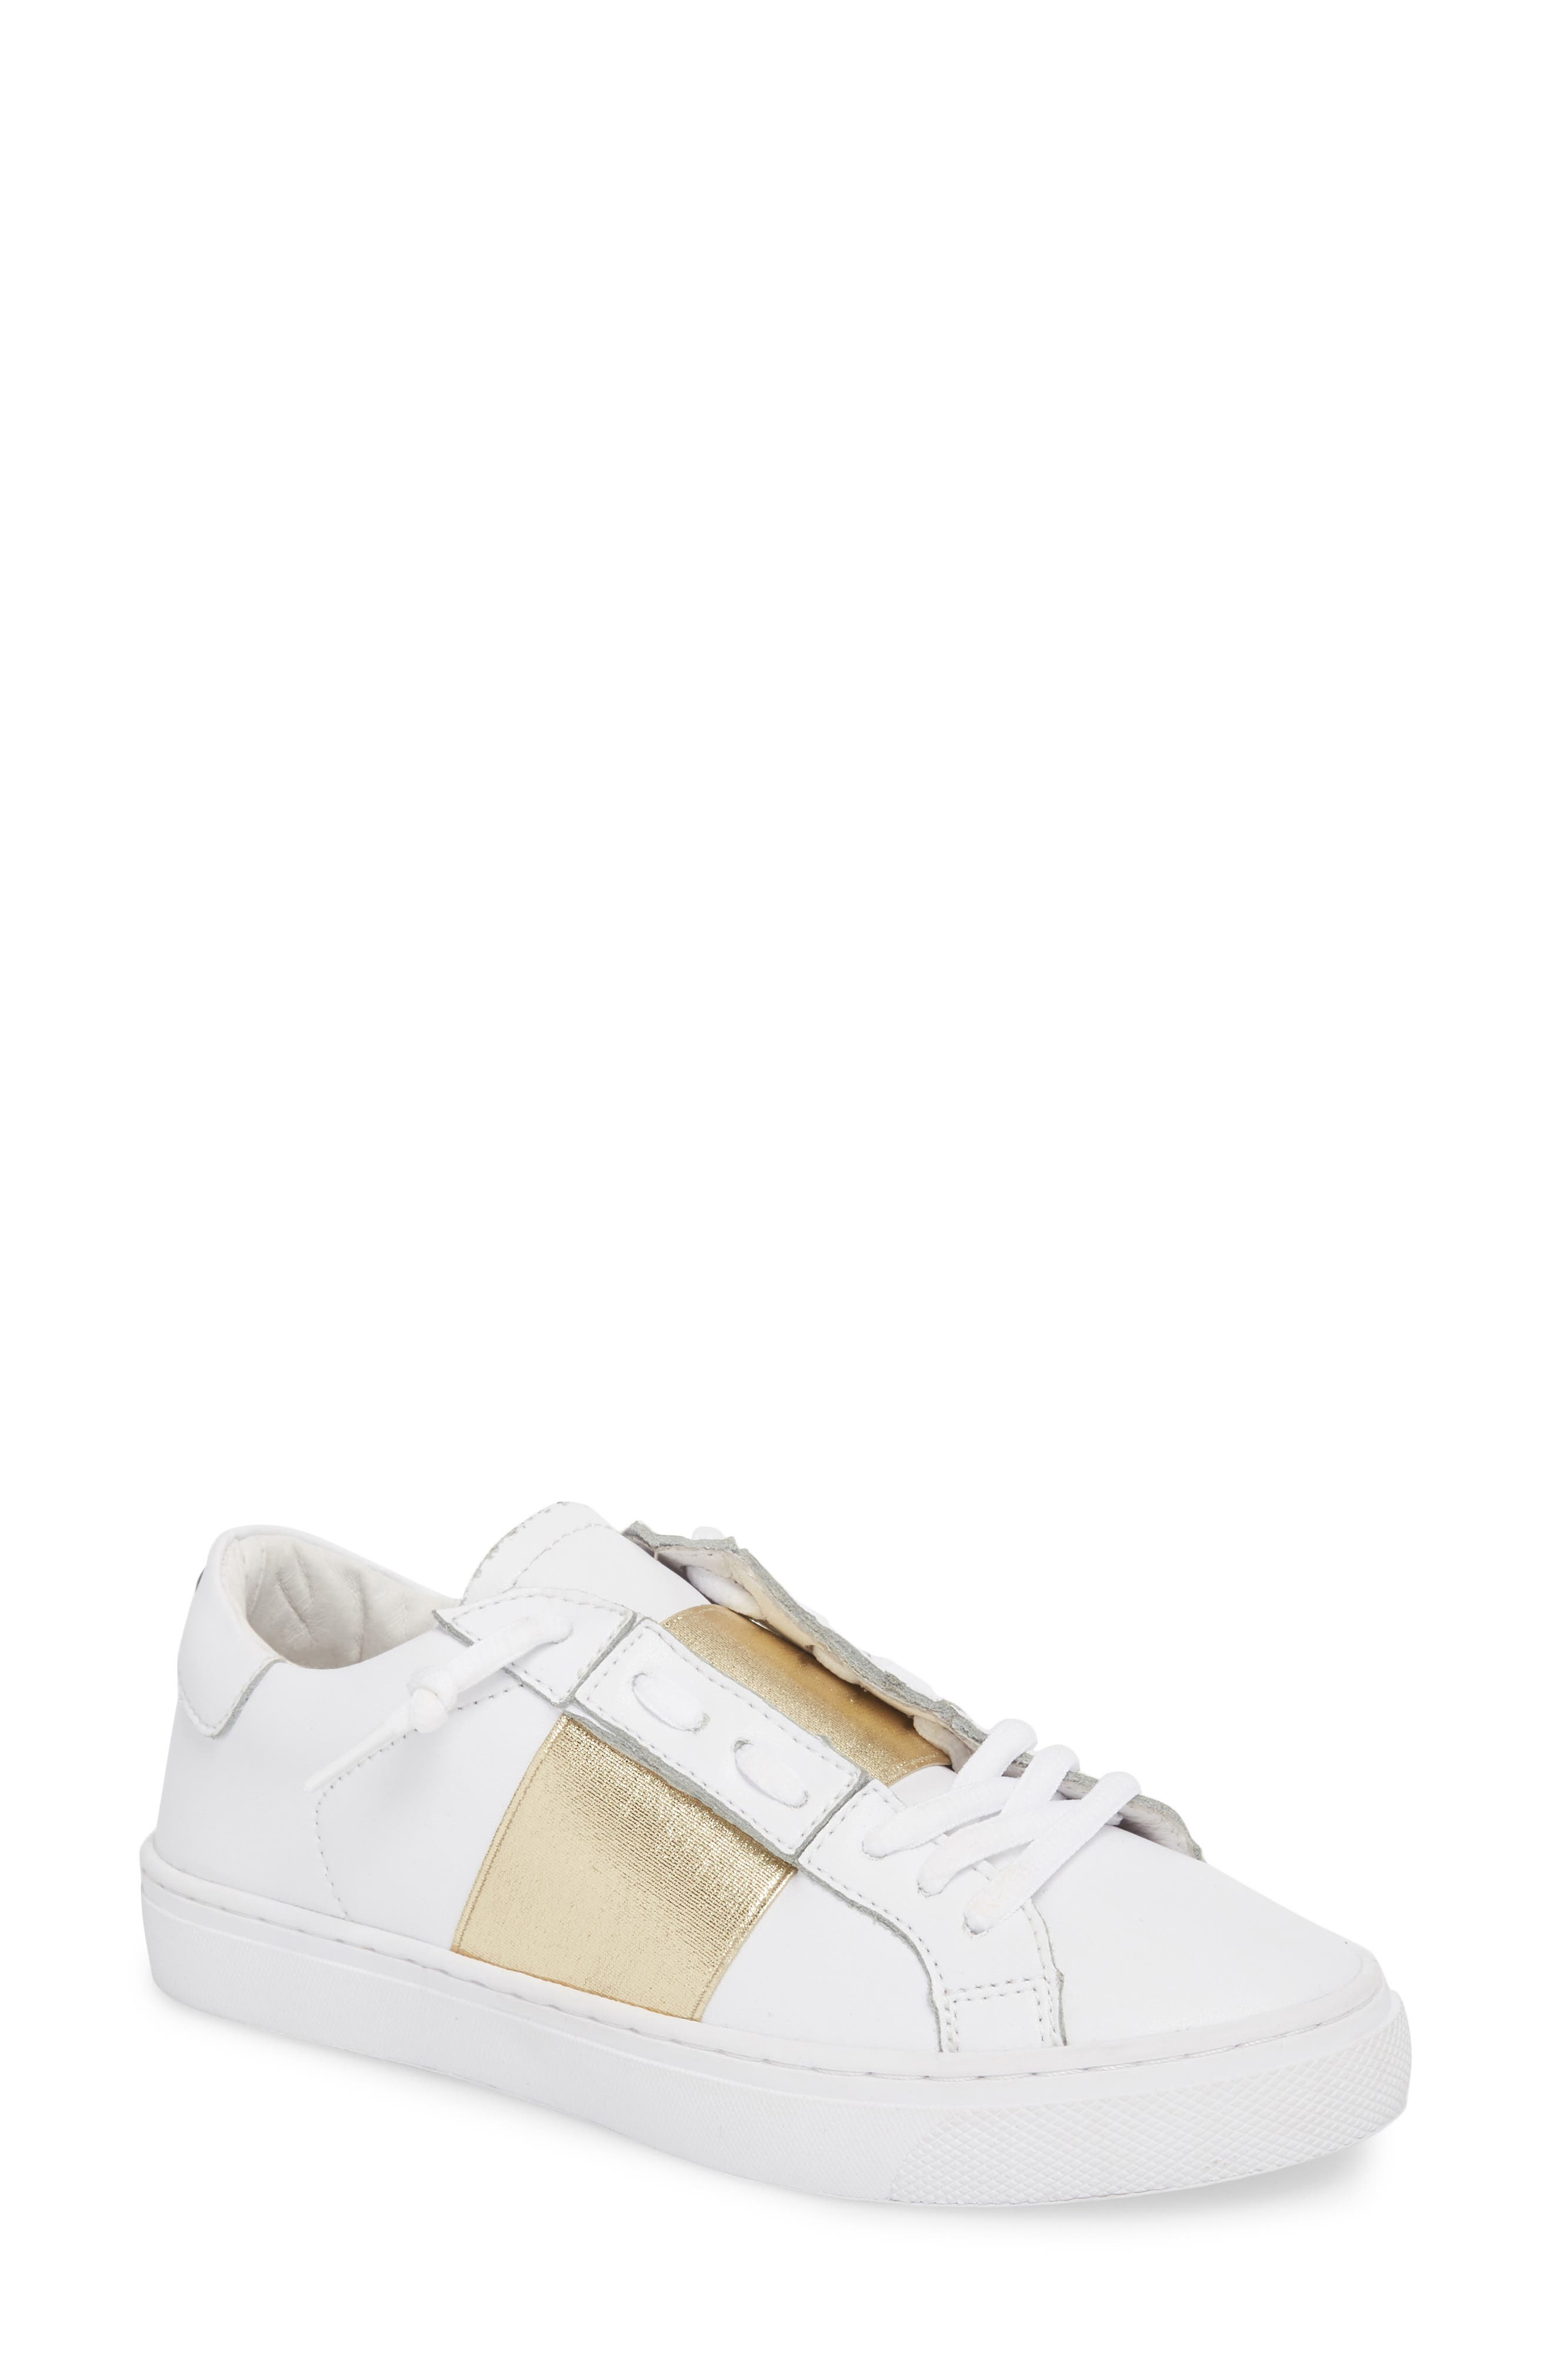 Slip-On Sneaker,                         Main,                         color, Gold Elastic Leather